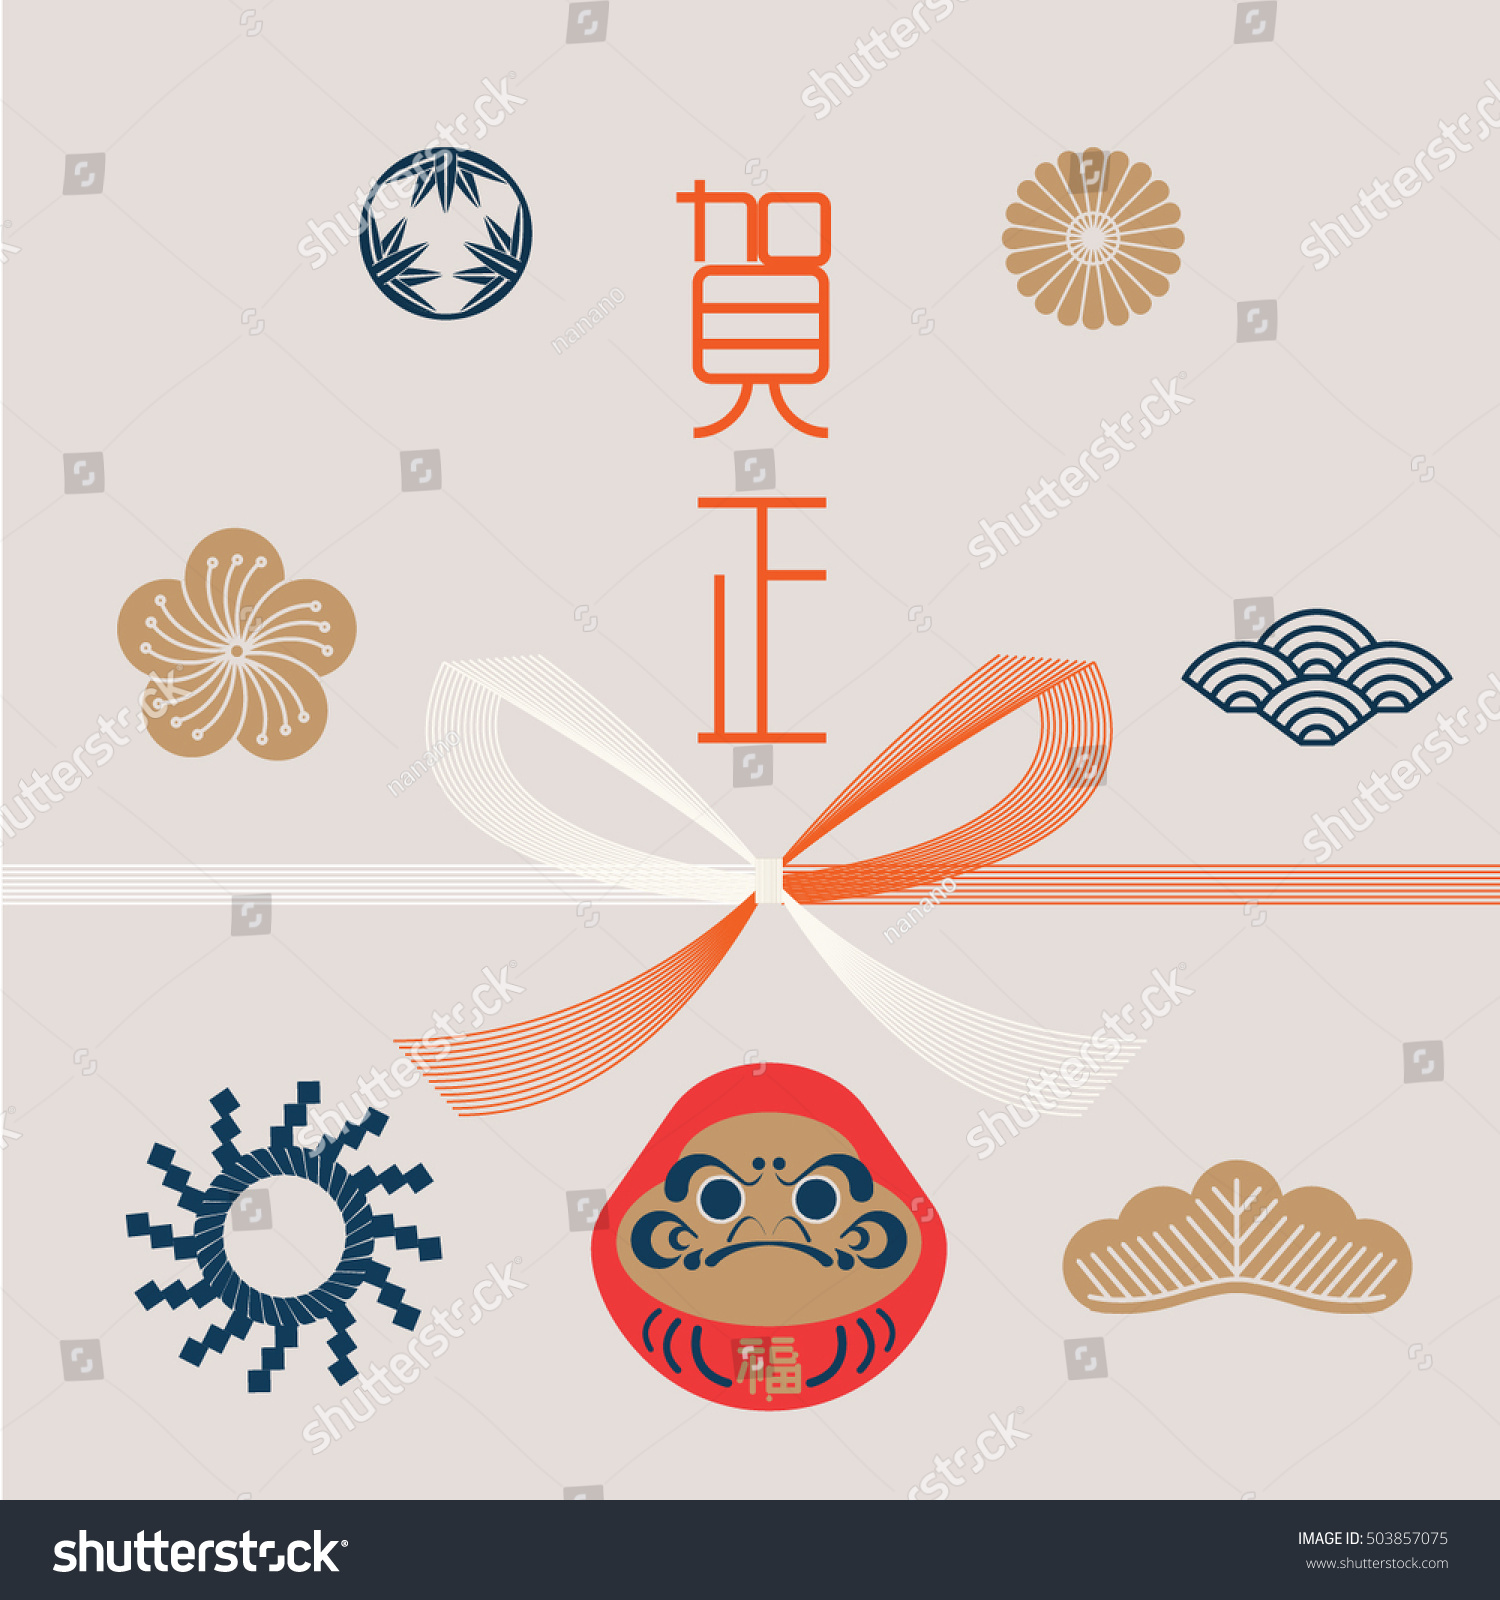 Year Rooster 2017 Japanese Iconic Element Stock Vector 2018